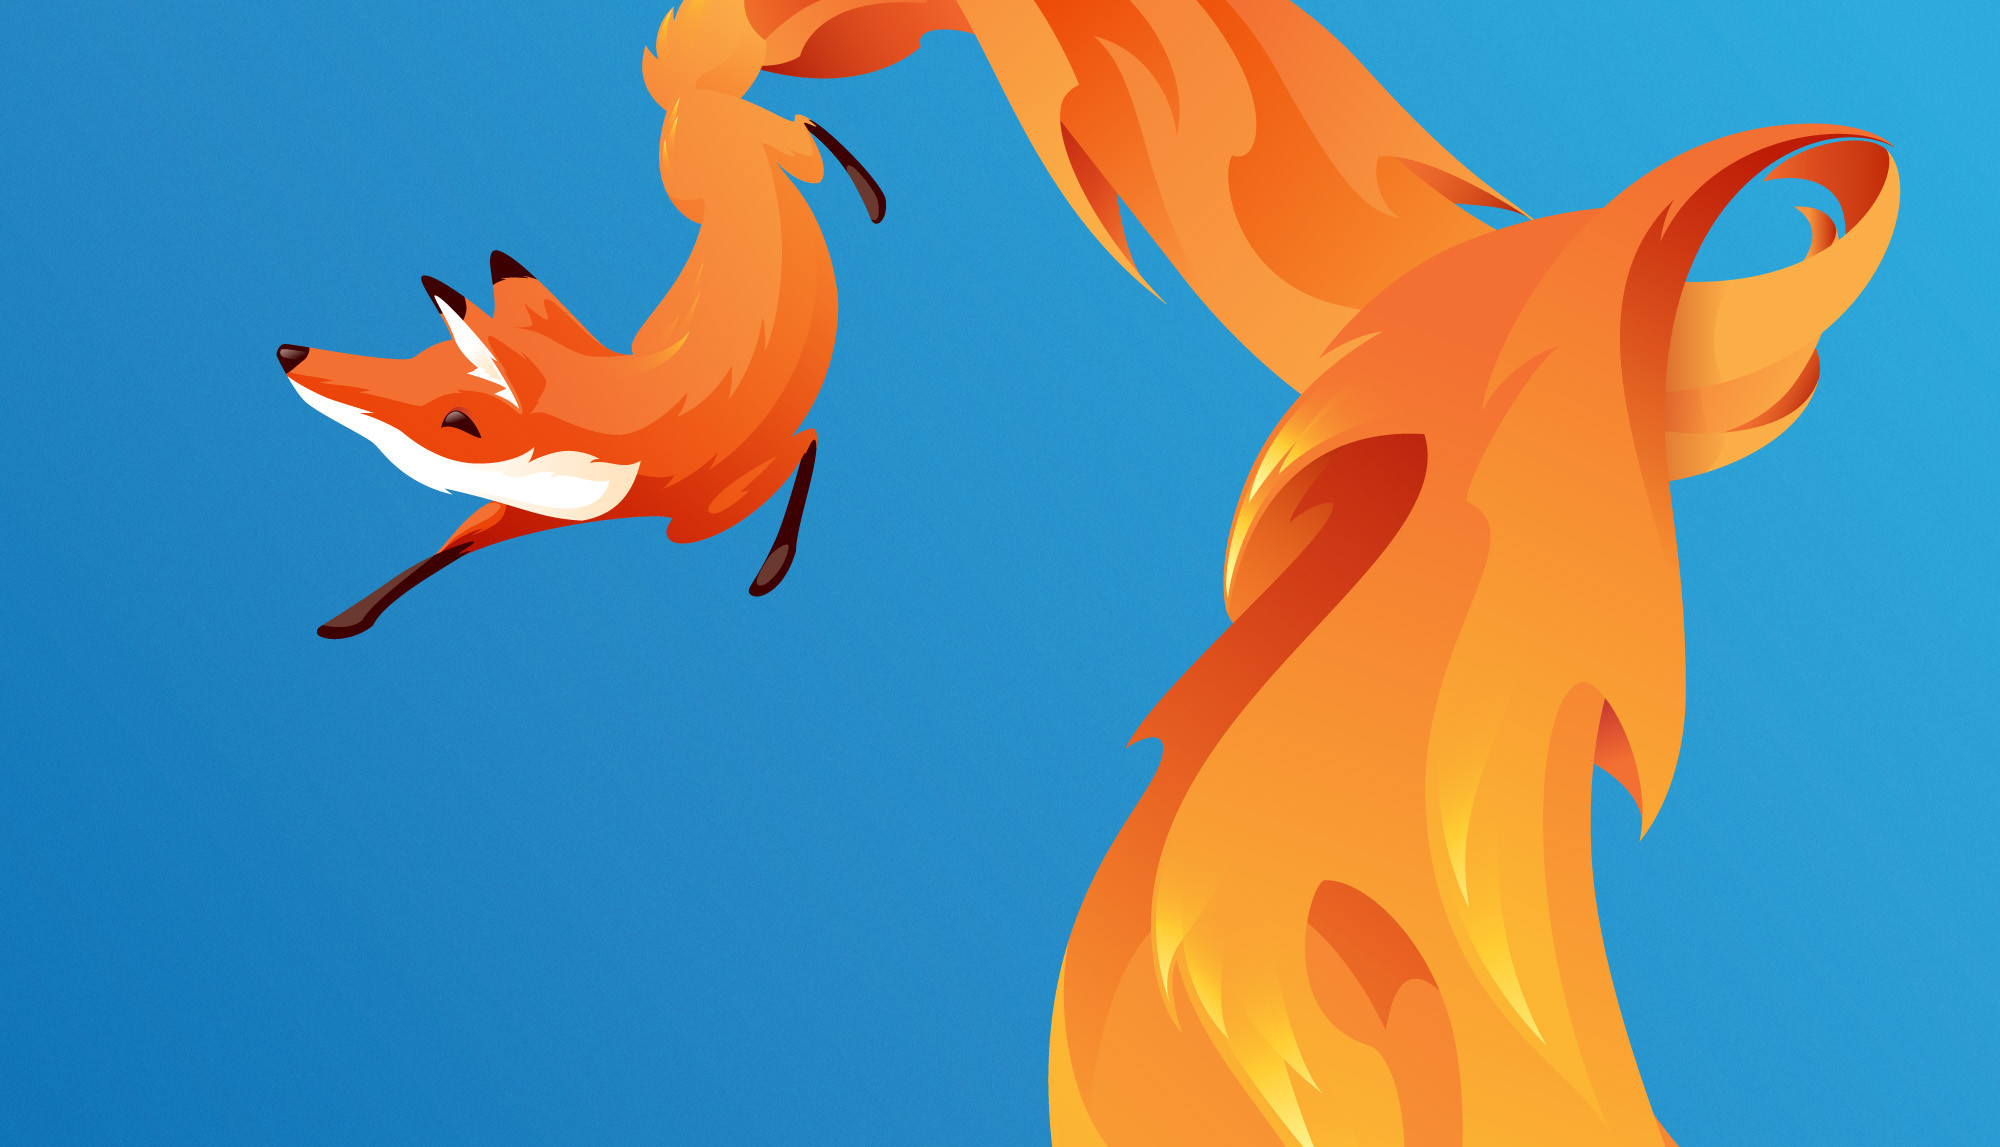 firefox browser backgrounds ·①